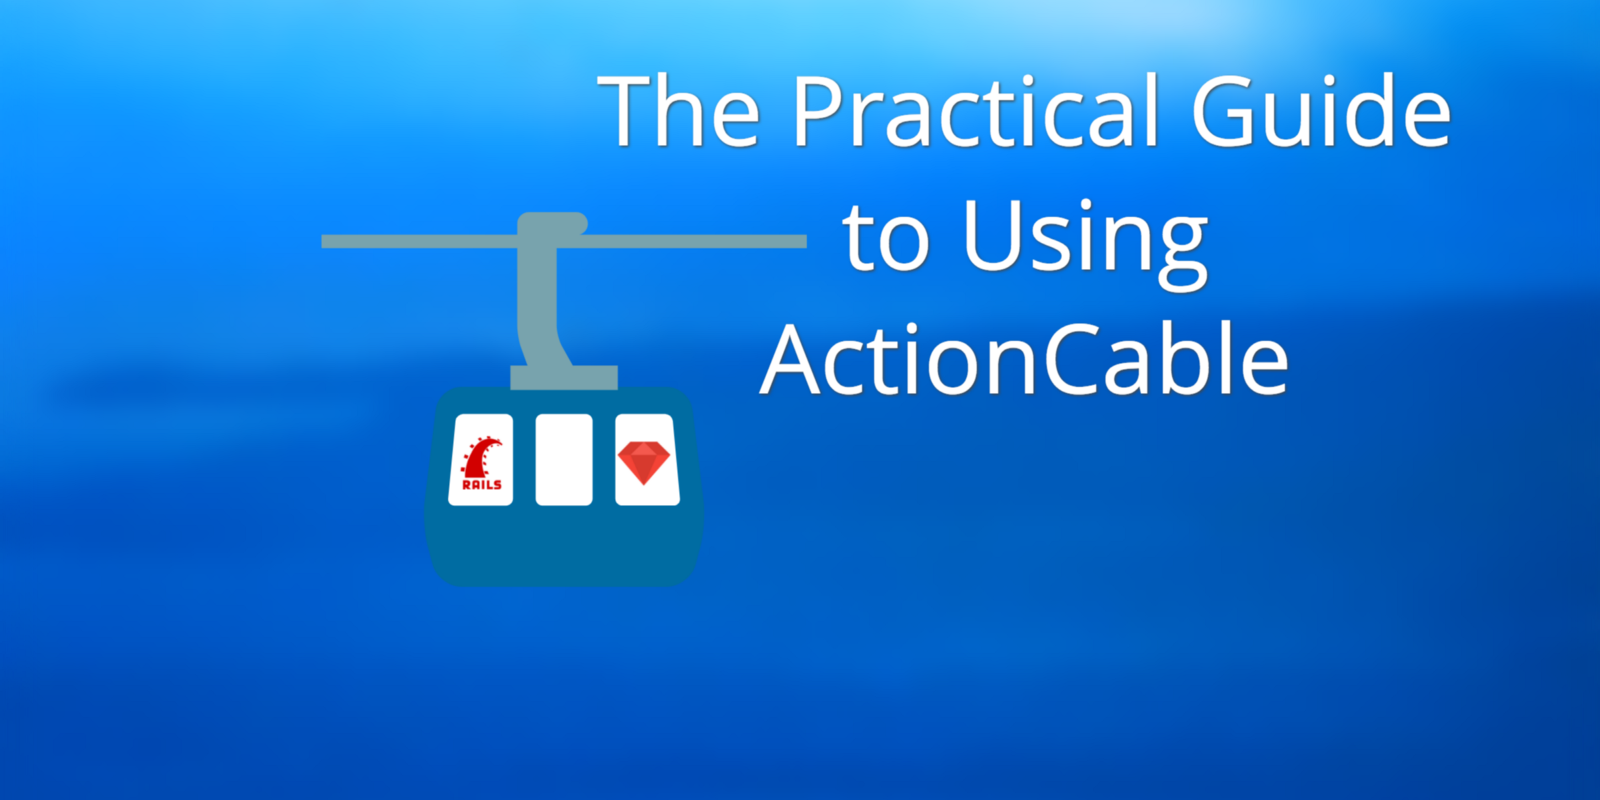 /the-practical-guide-to-using-actioncable-30d570d8988c feature image